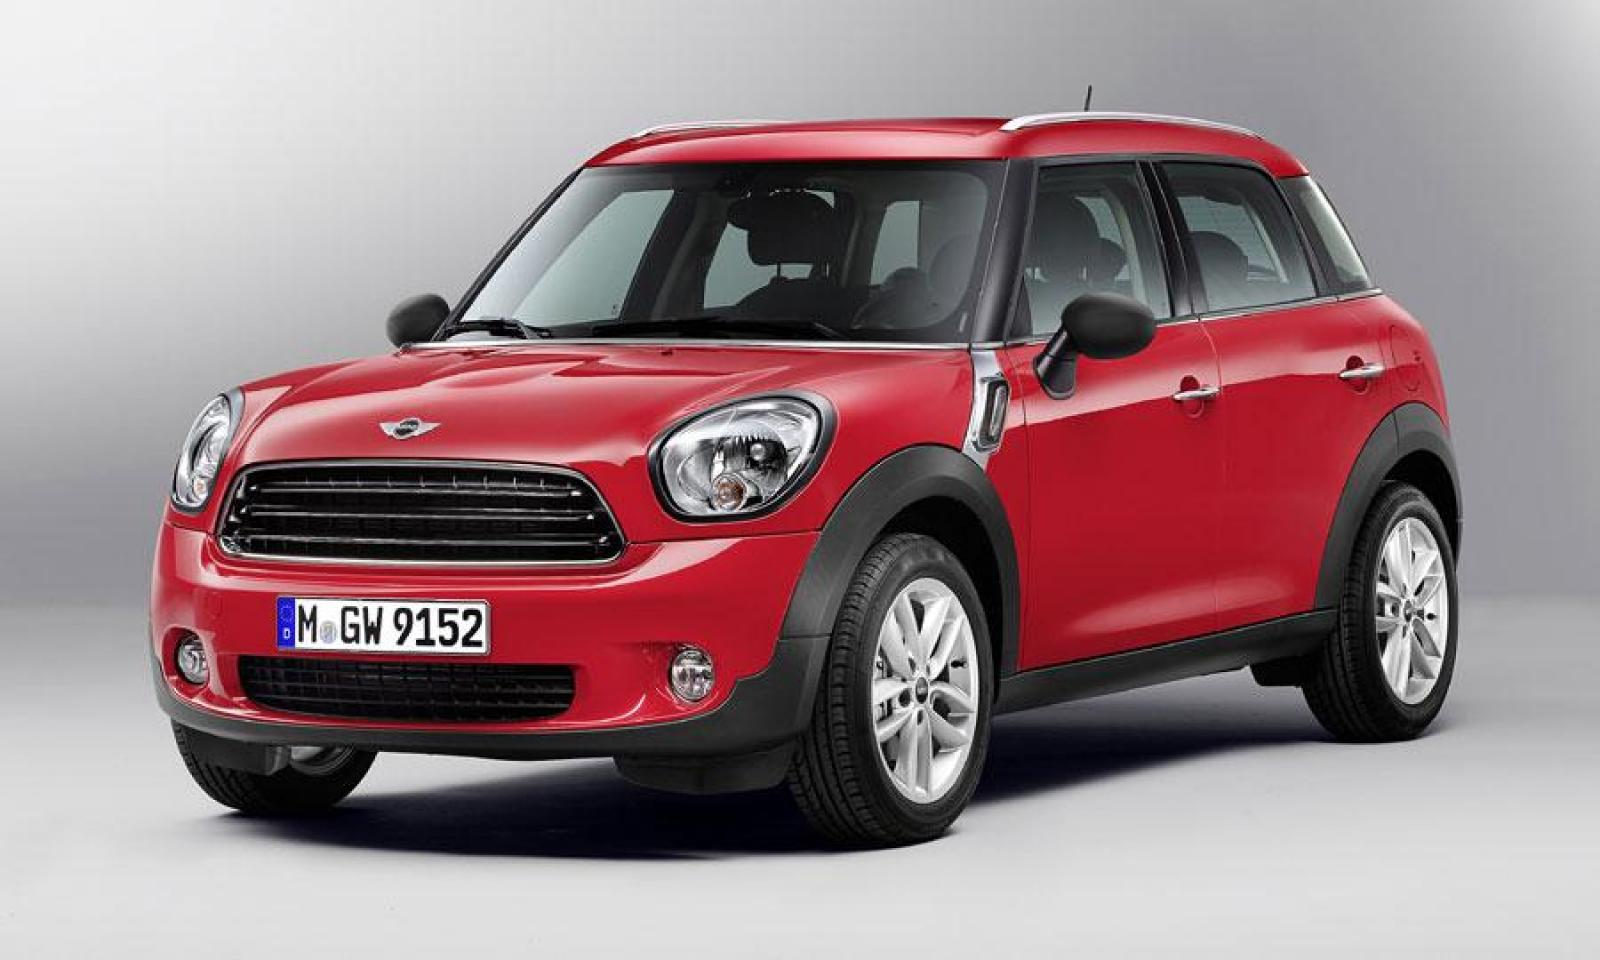 2013 mini cooper countryman information and photos zombiedrive. Black Bedroom Furniture Sets. Home Design Ideas